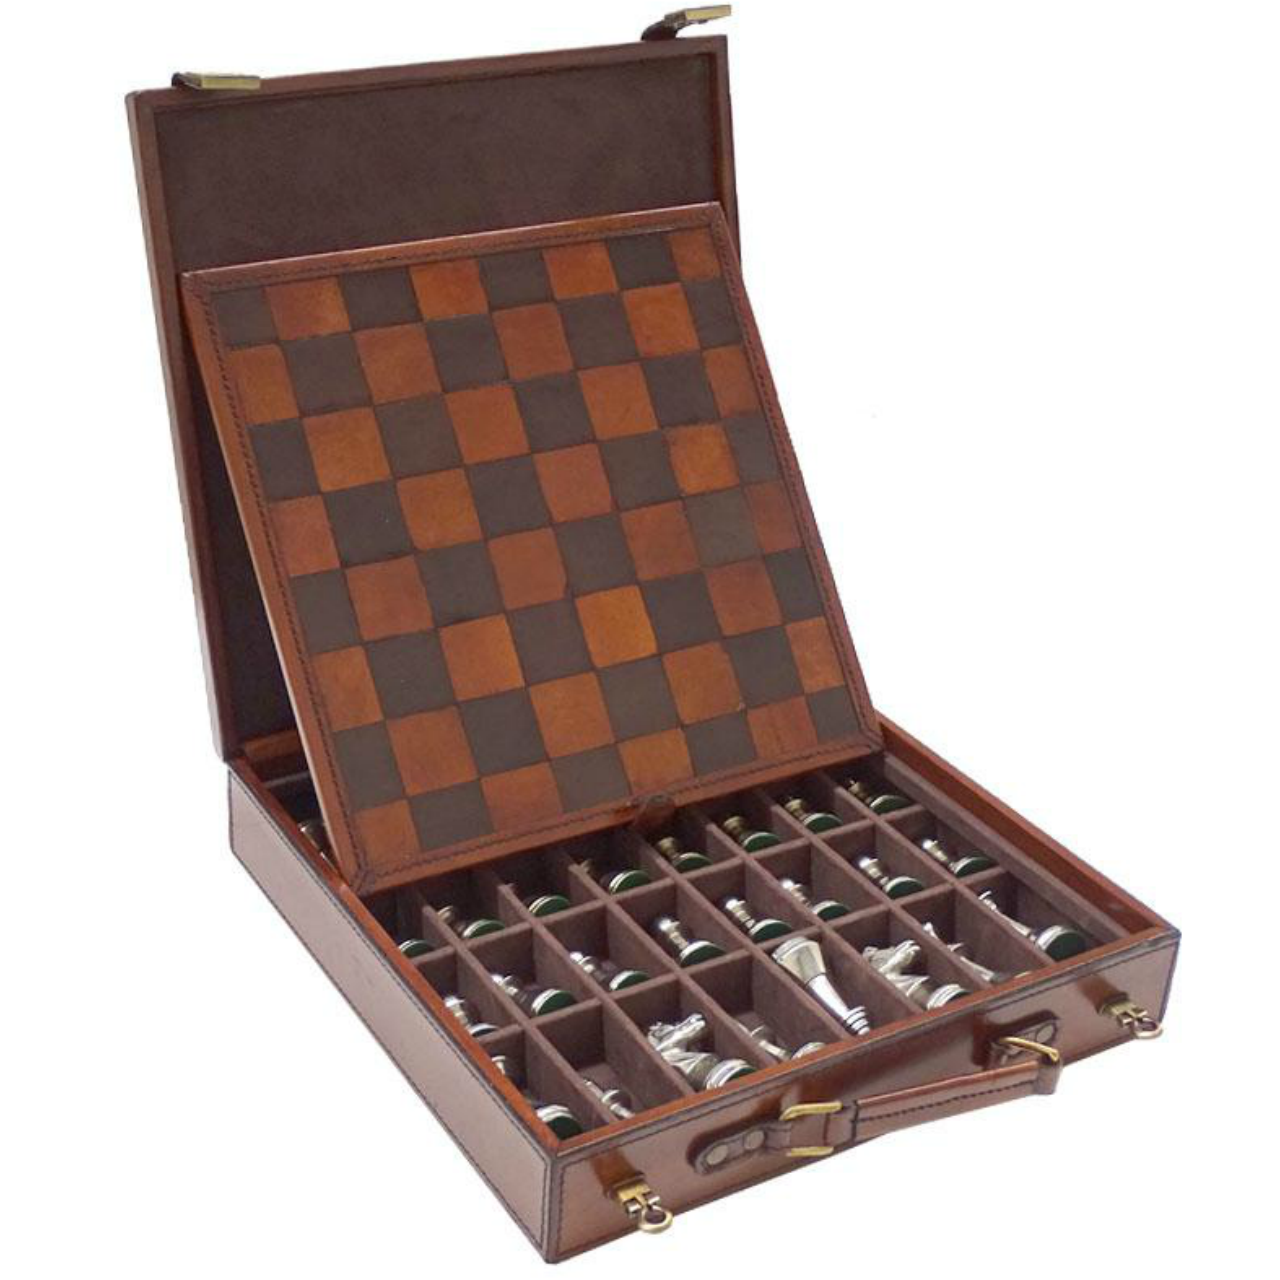 Norwood Luxury Leather Chess Set with Nickel Pieces (NORLEATHER1)